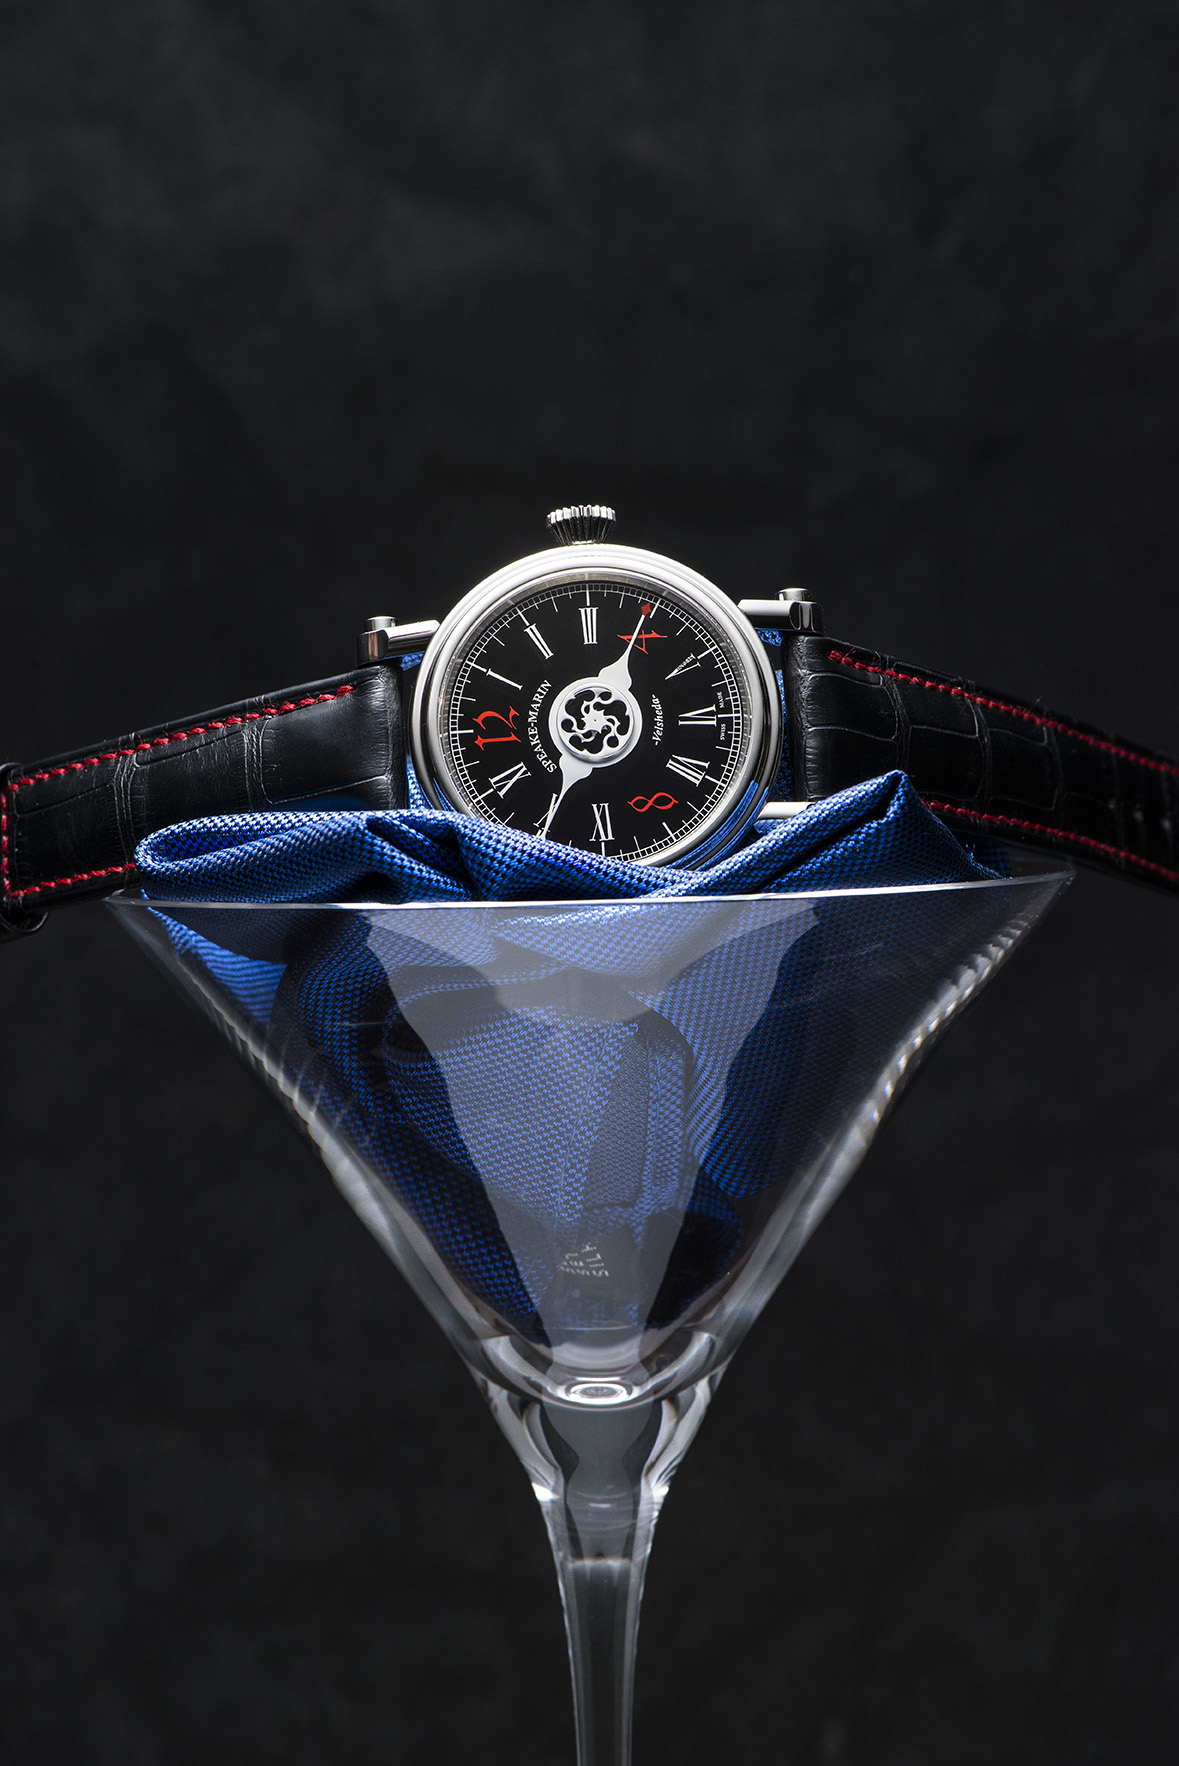 Speake-Marin's Valsheda Gothic Black watch.